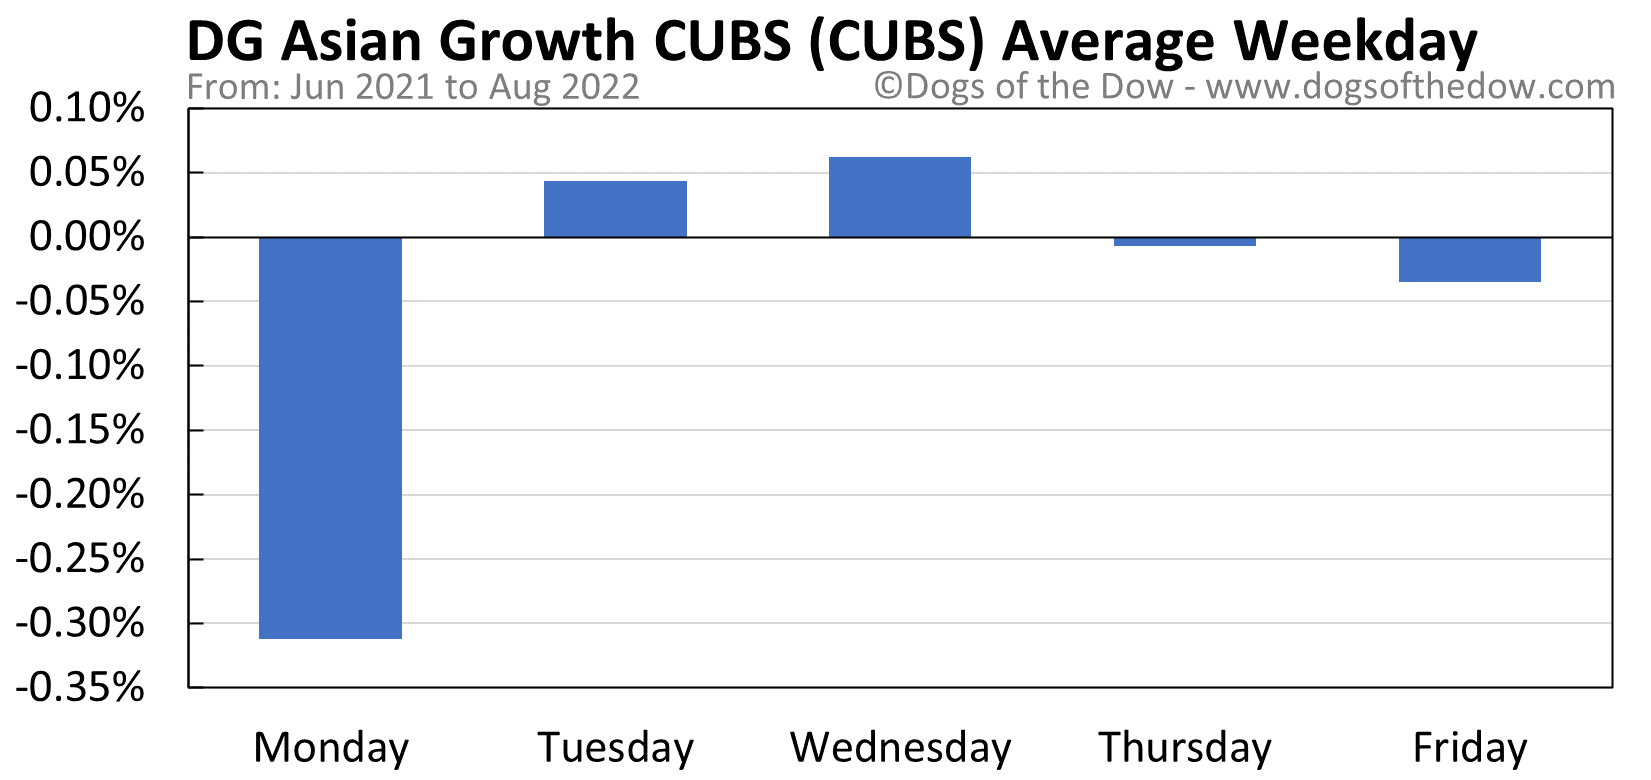 CUBS average weekday chart